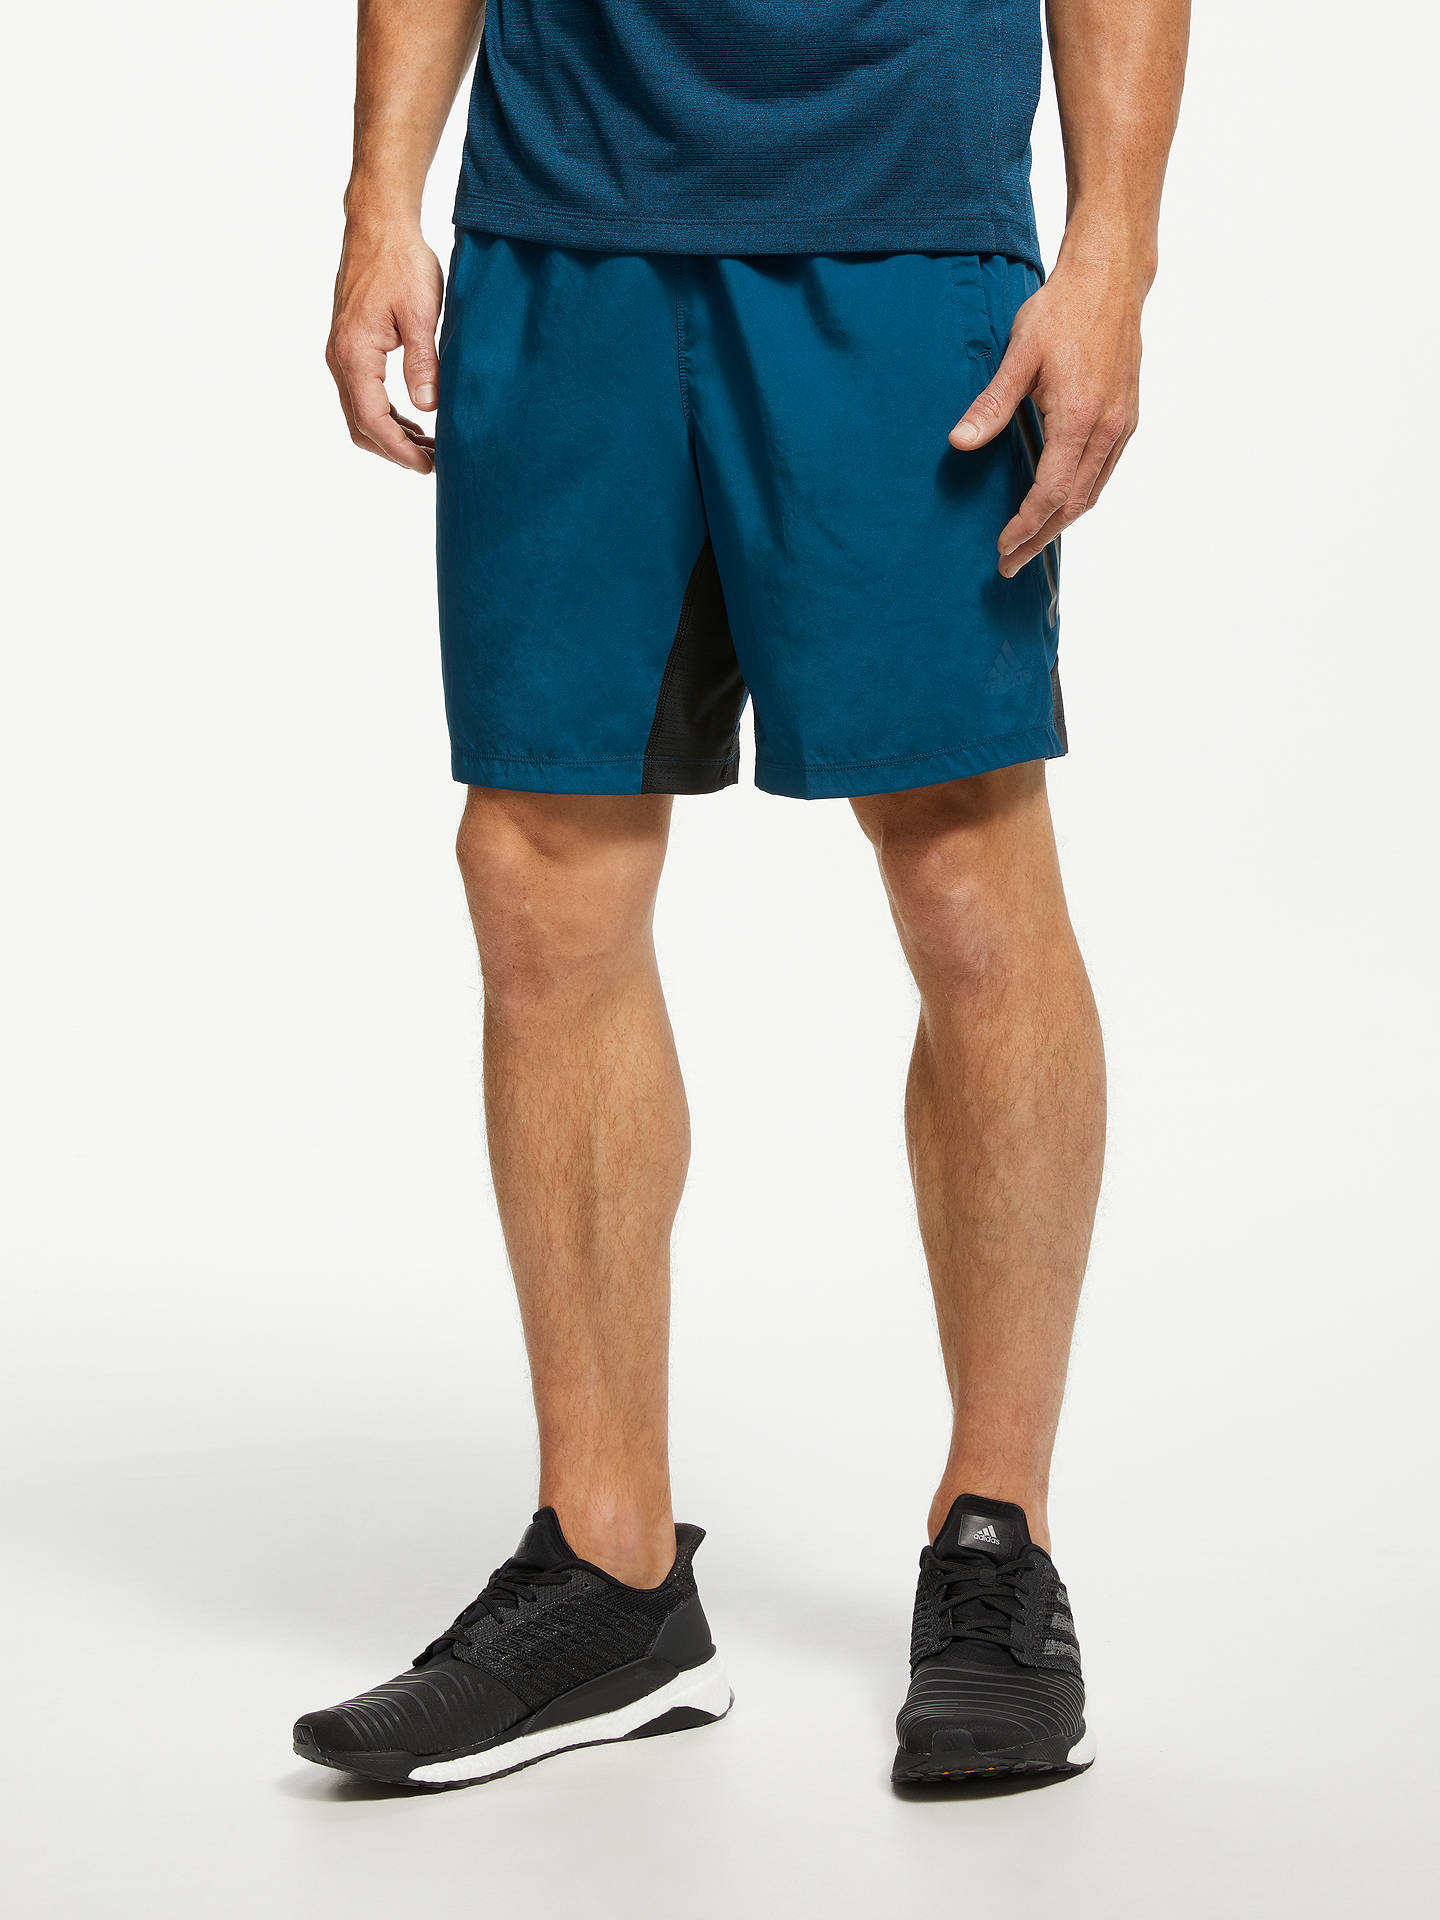 adidas originals 3 Striped Shorts , Dressinn